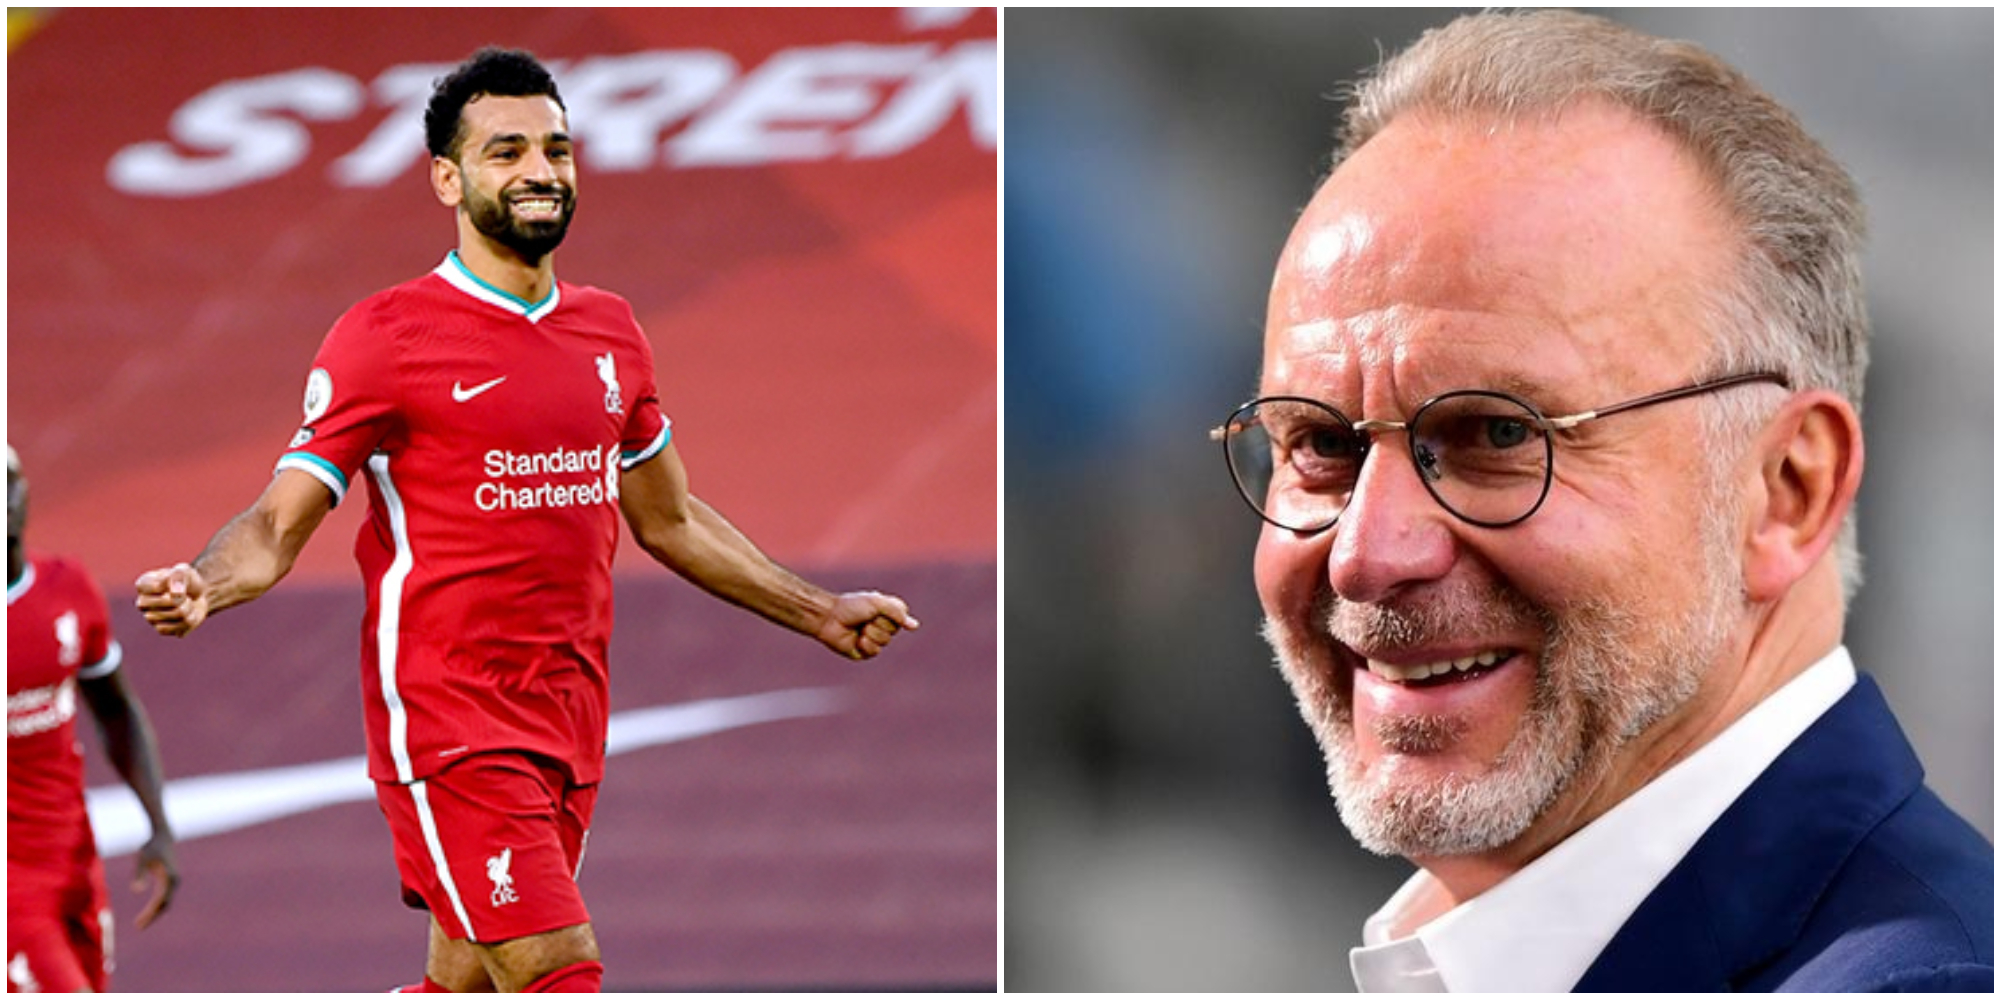 Bayern CEO wants 'Messi of Africa' Mo Salah – 'It would be an honour to have him'